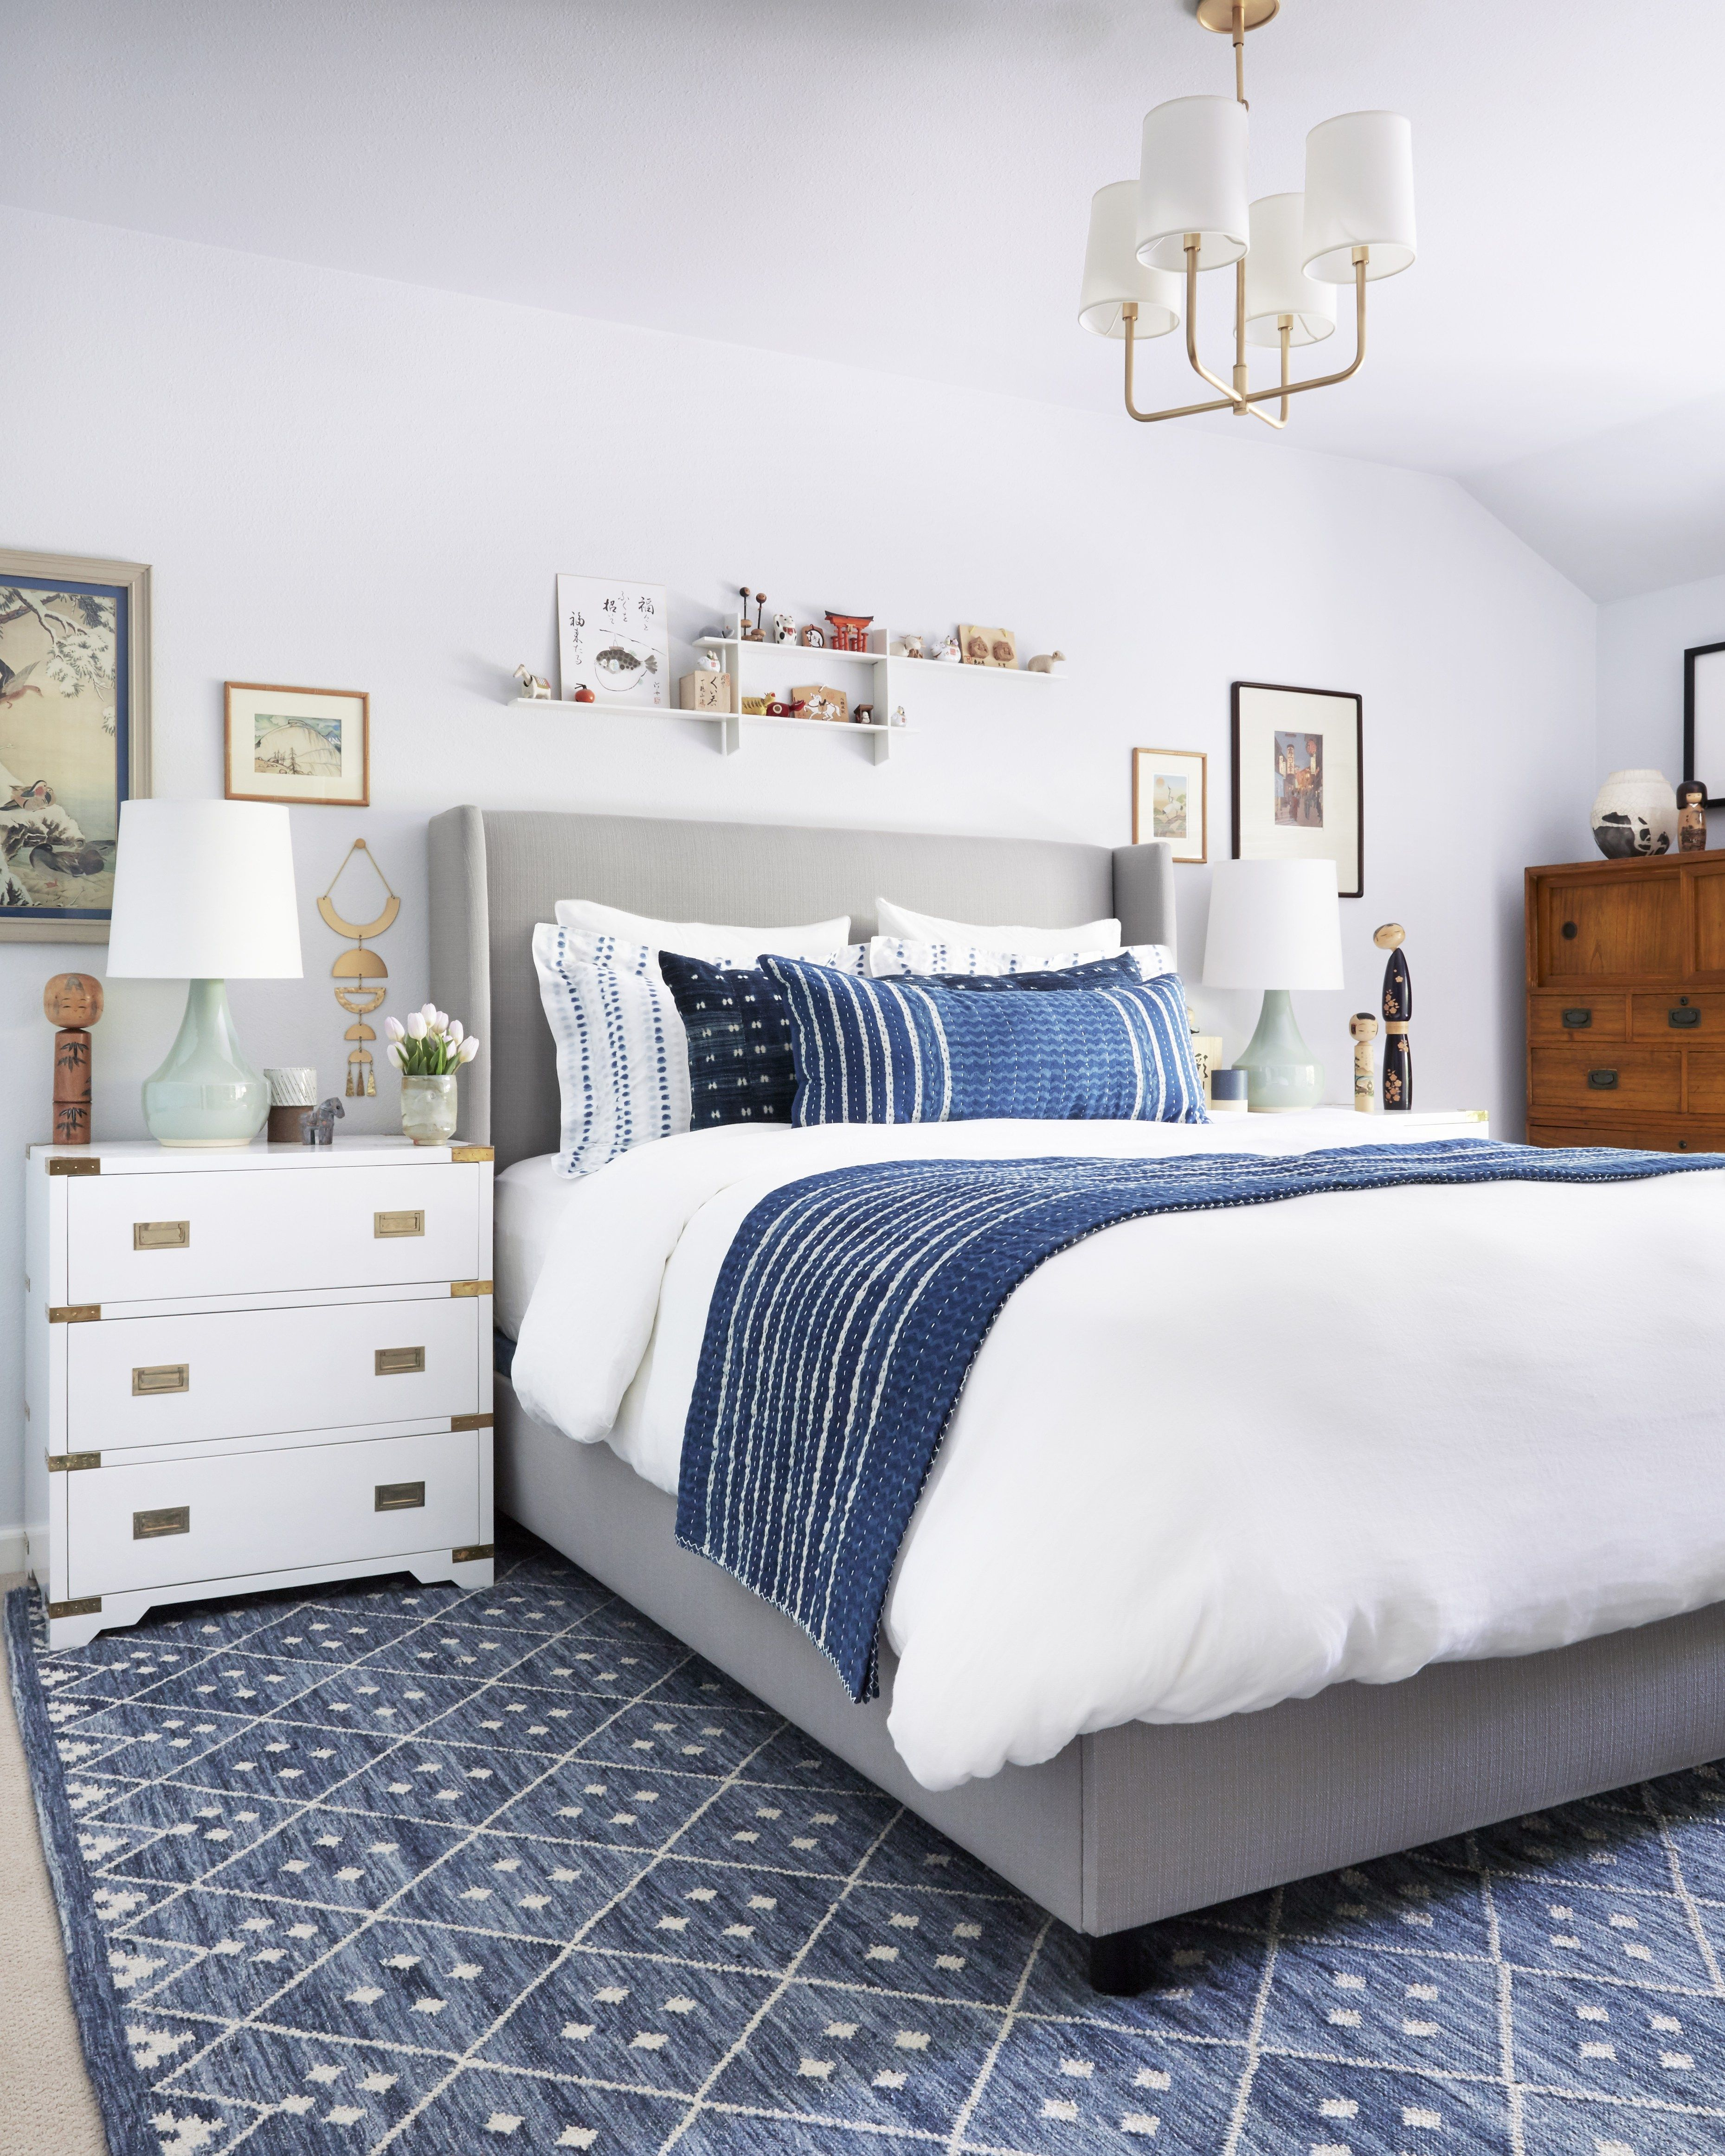 Guest Bedroom Ideas: How to Create Big Design Impact ...